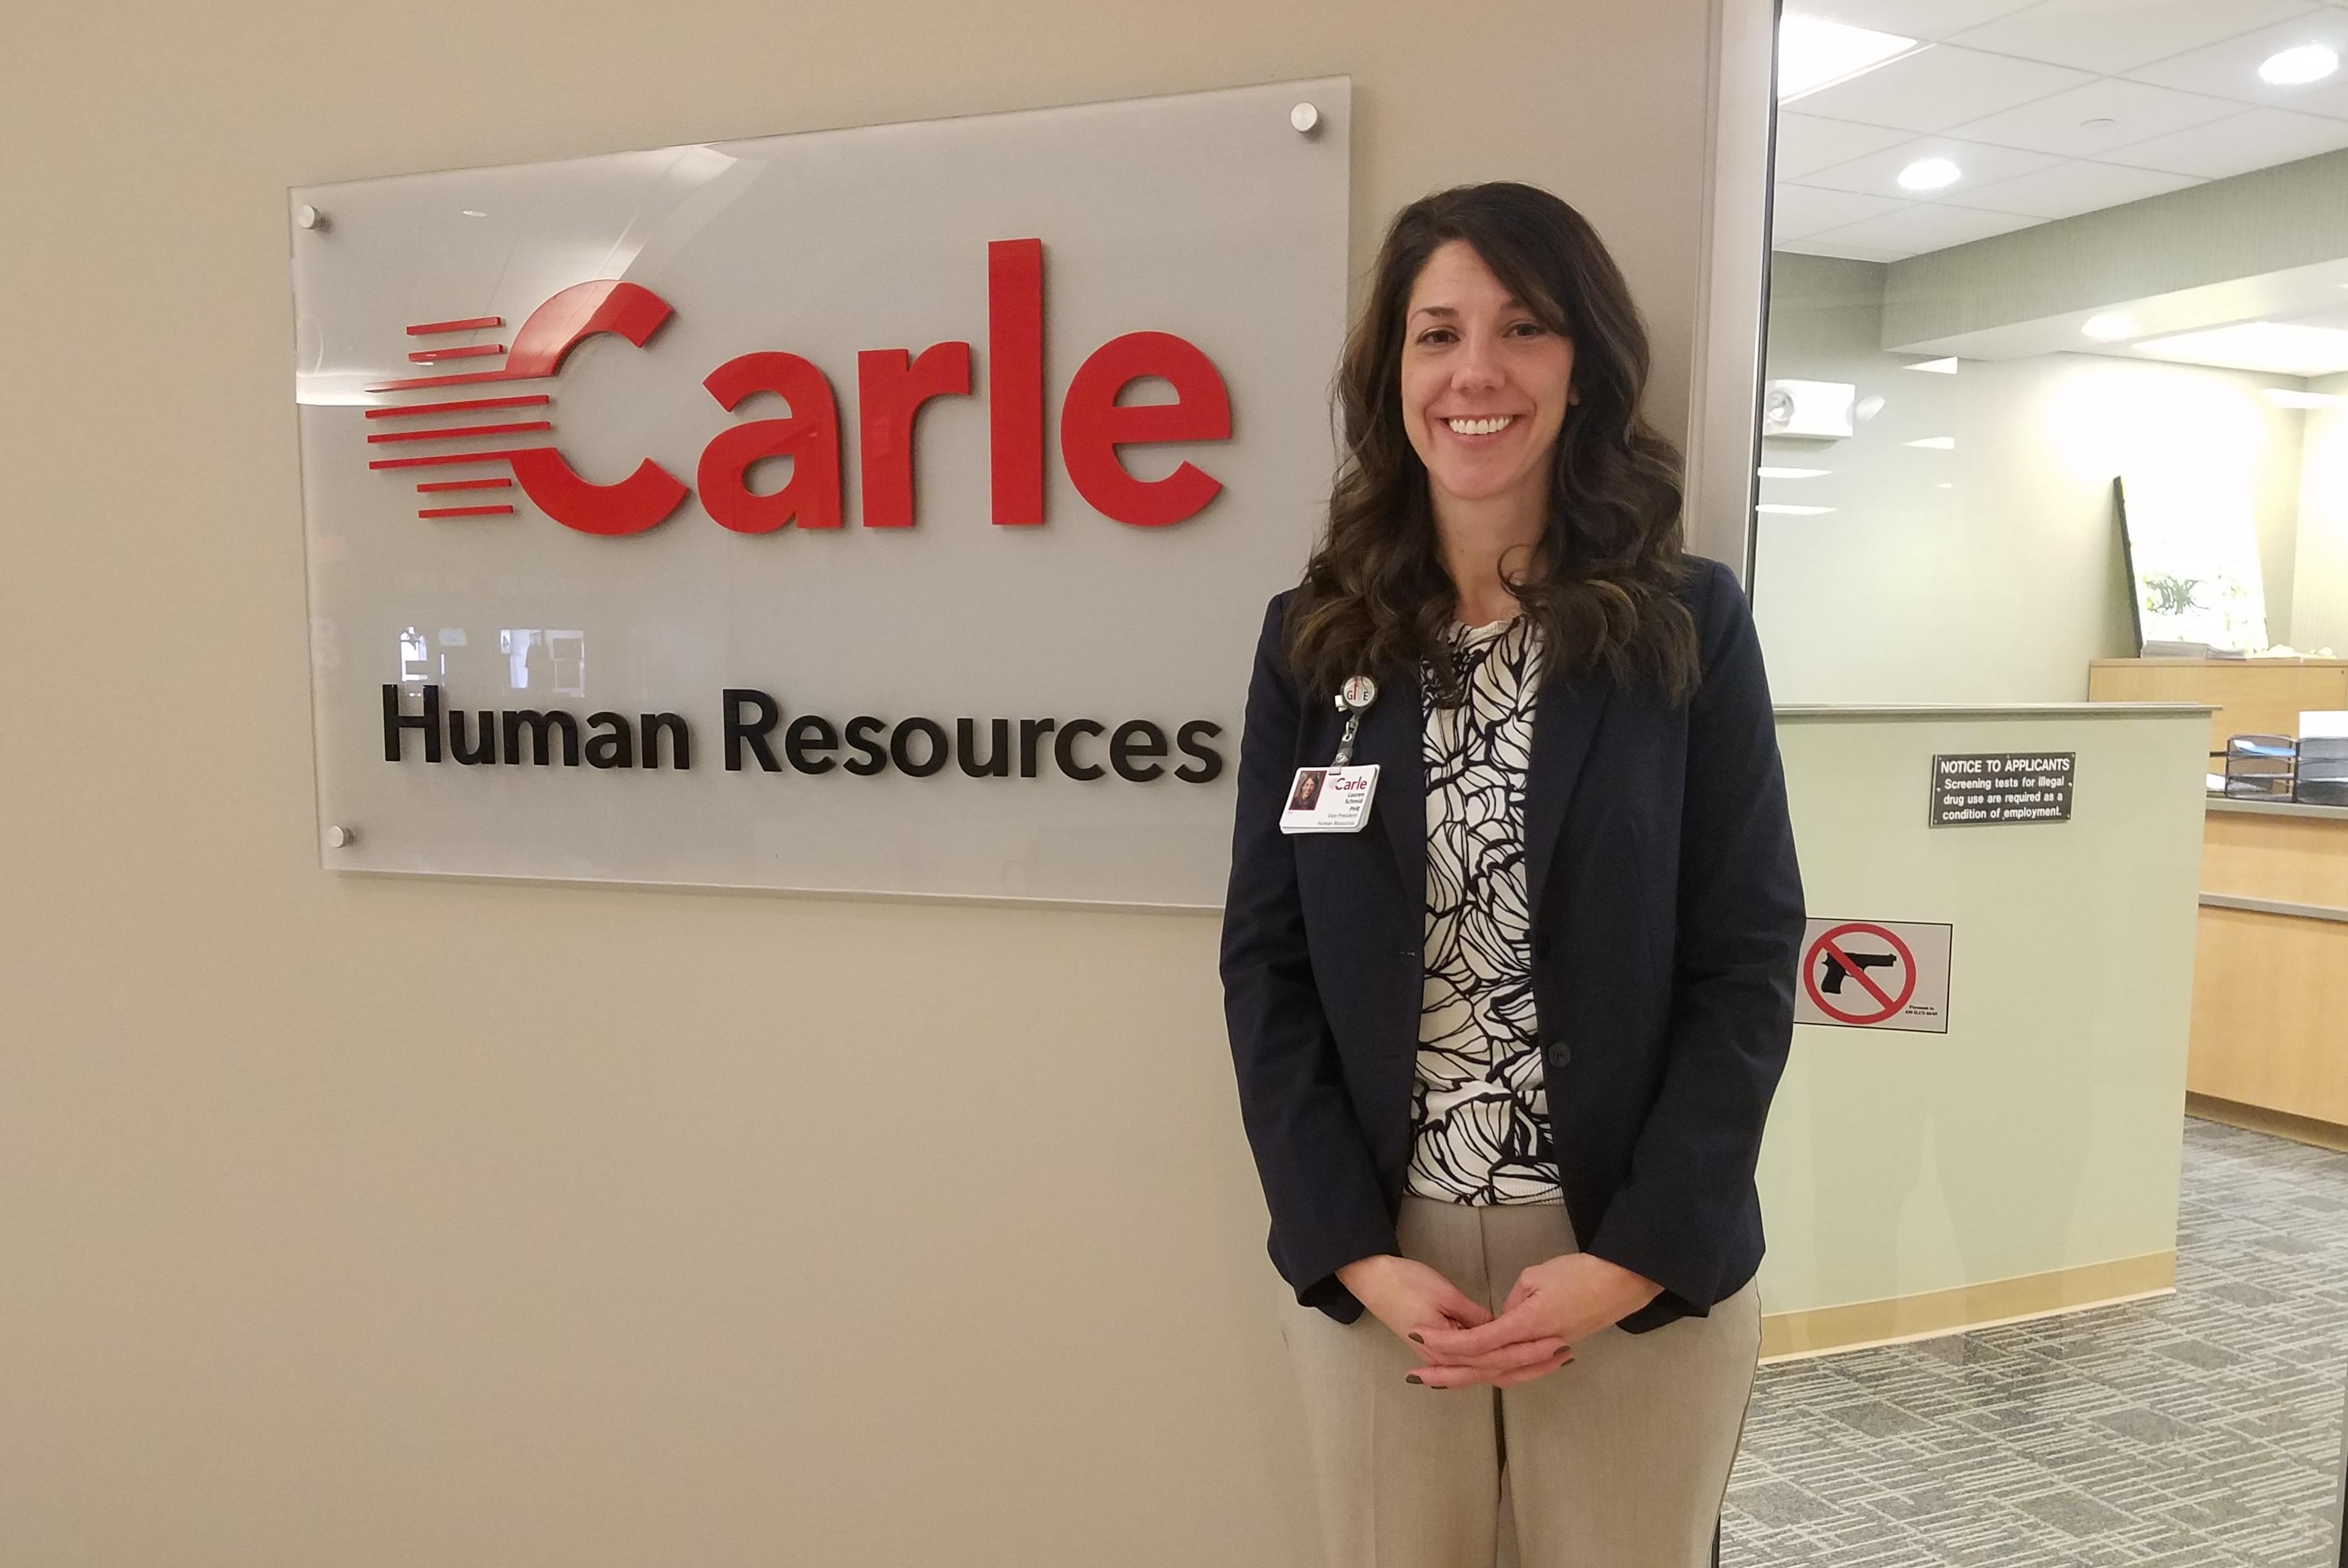 Carle Foundation Picture